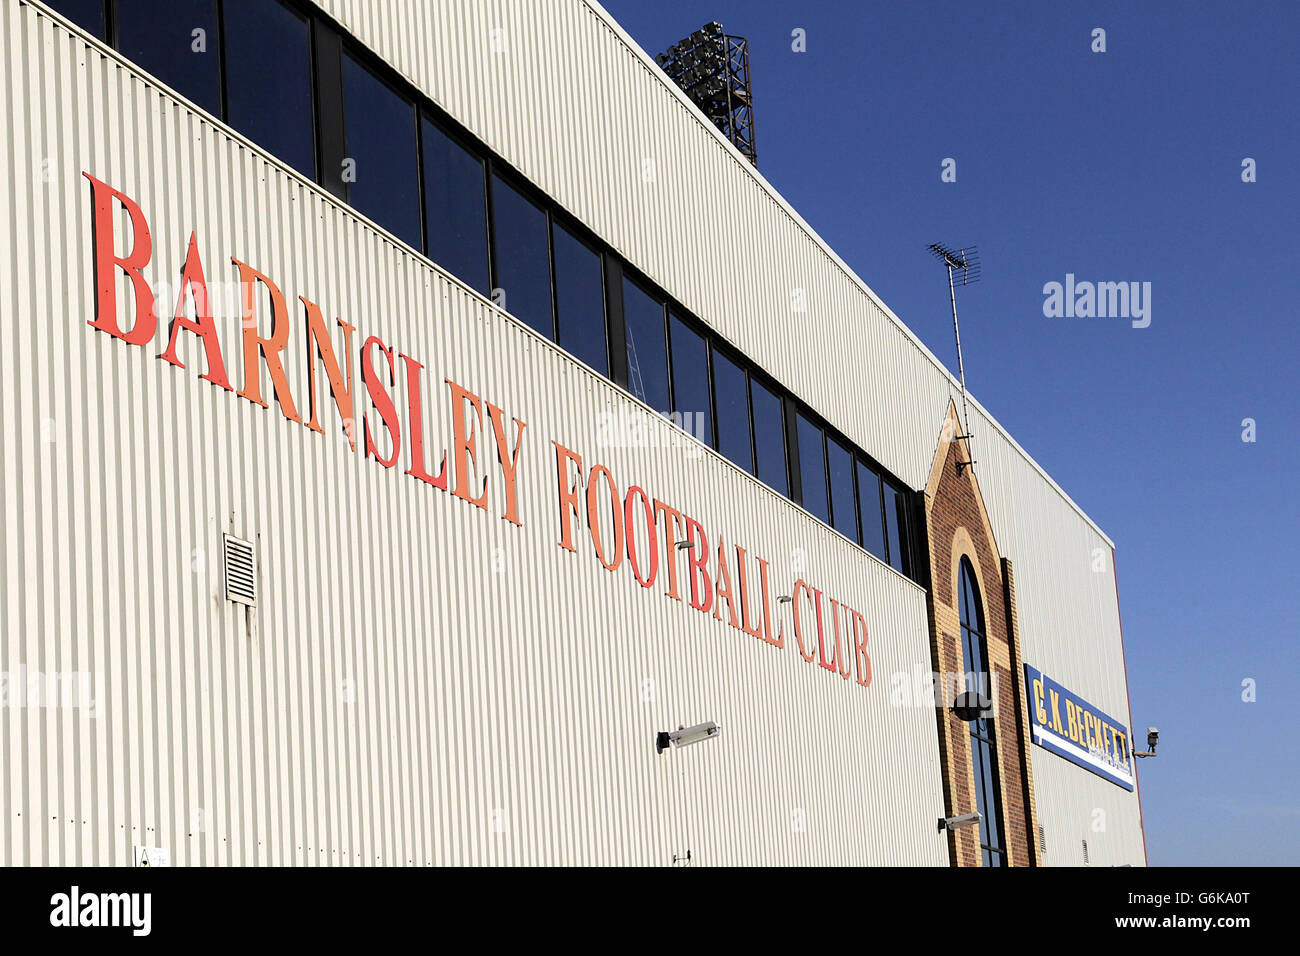 Barnsley Sign Stock Photos & Barnsley Sign Stock Images